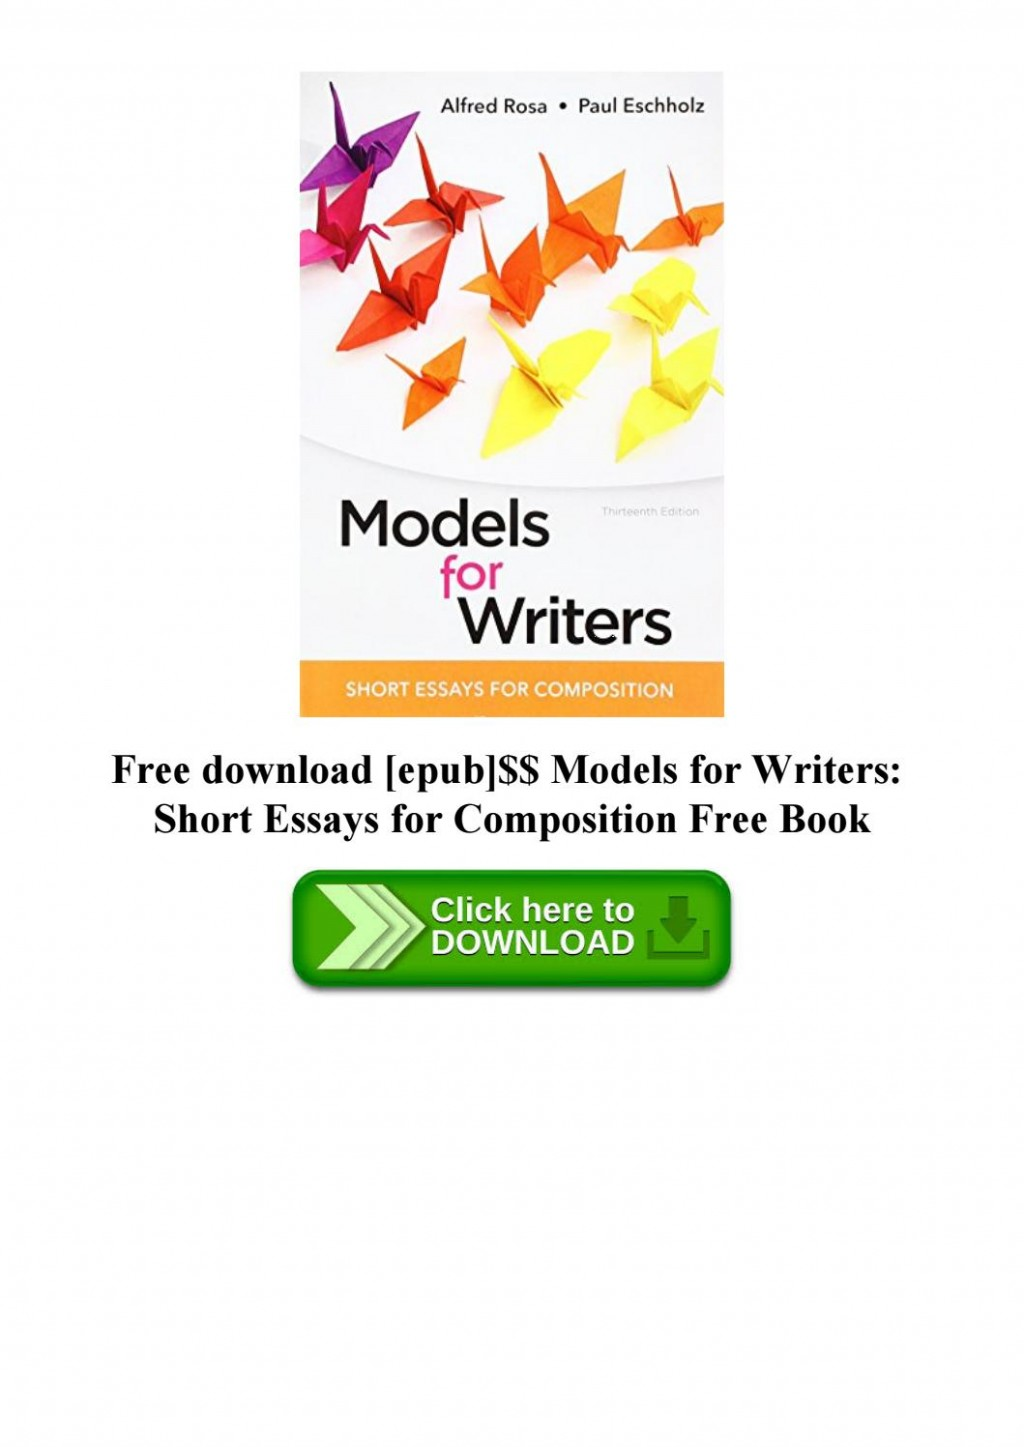 017 Page 1 Essay Example Models For Writers Short Essays Singular Composition 12th Edition 13th Pdf Large